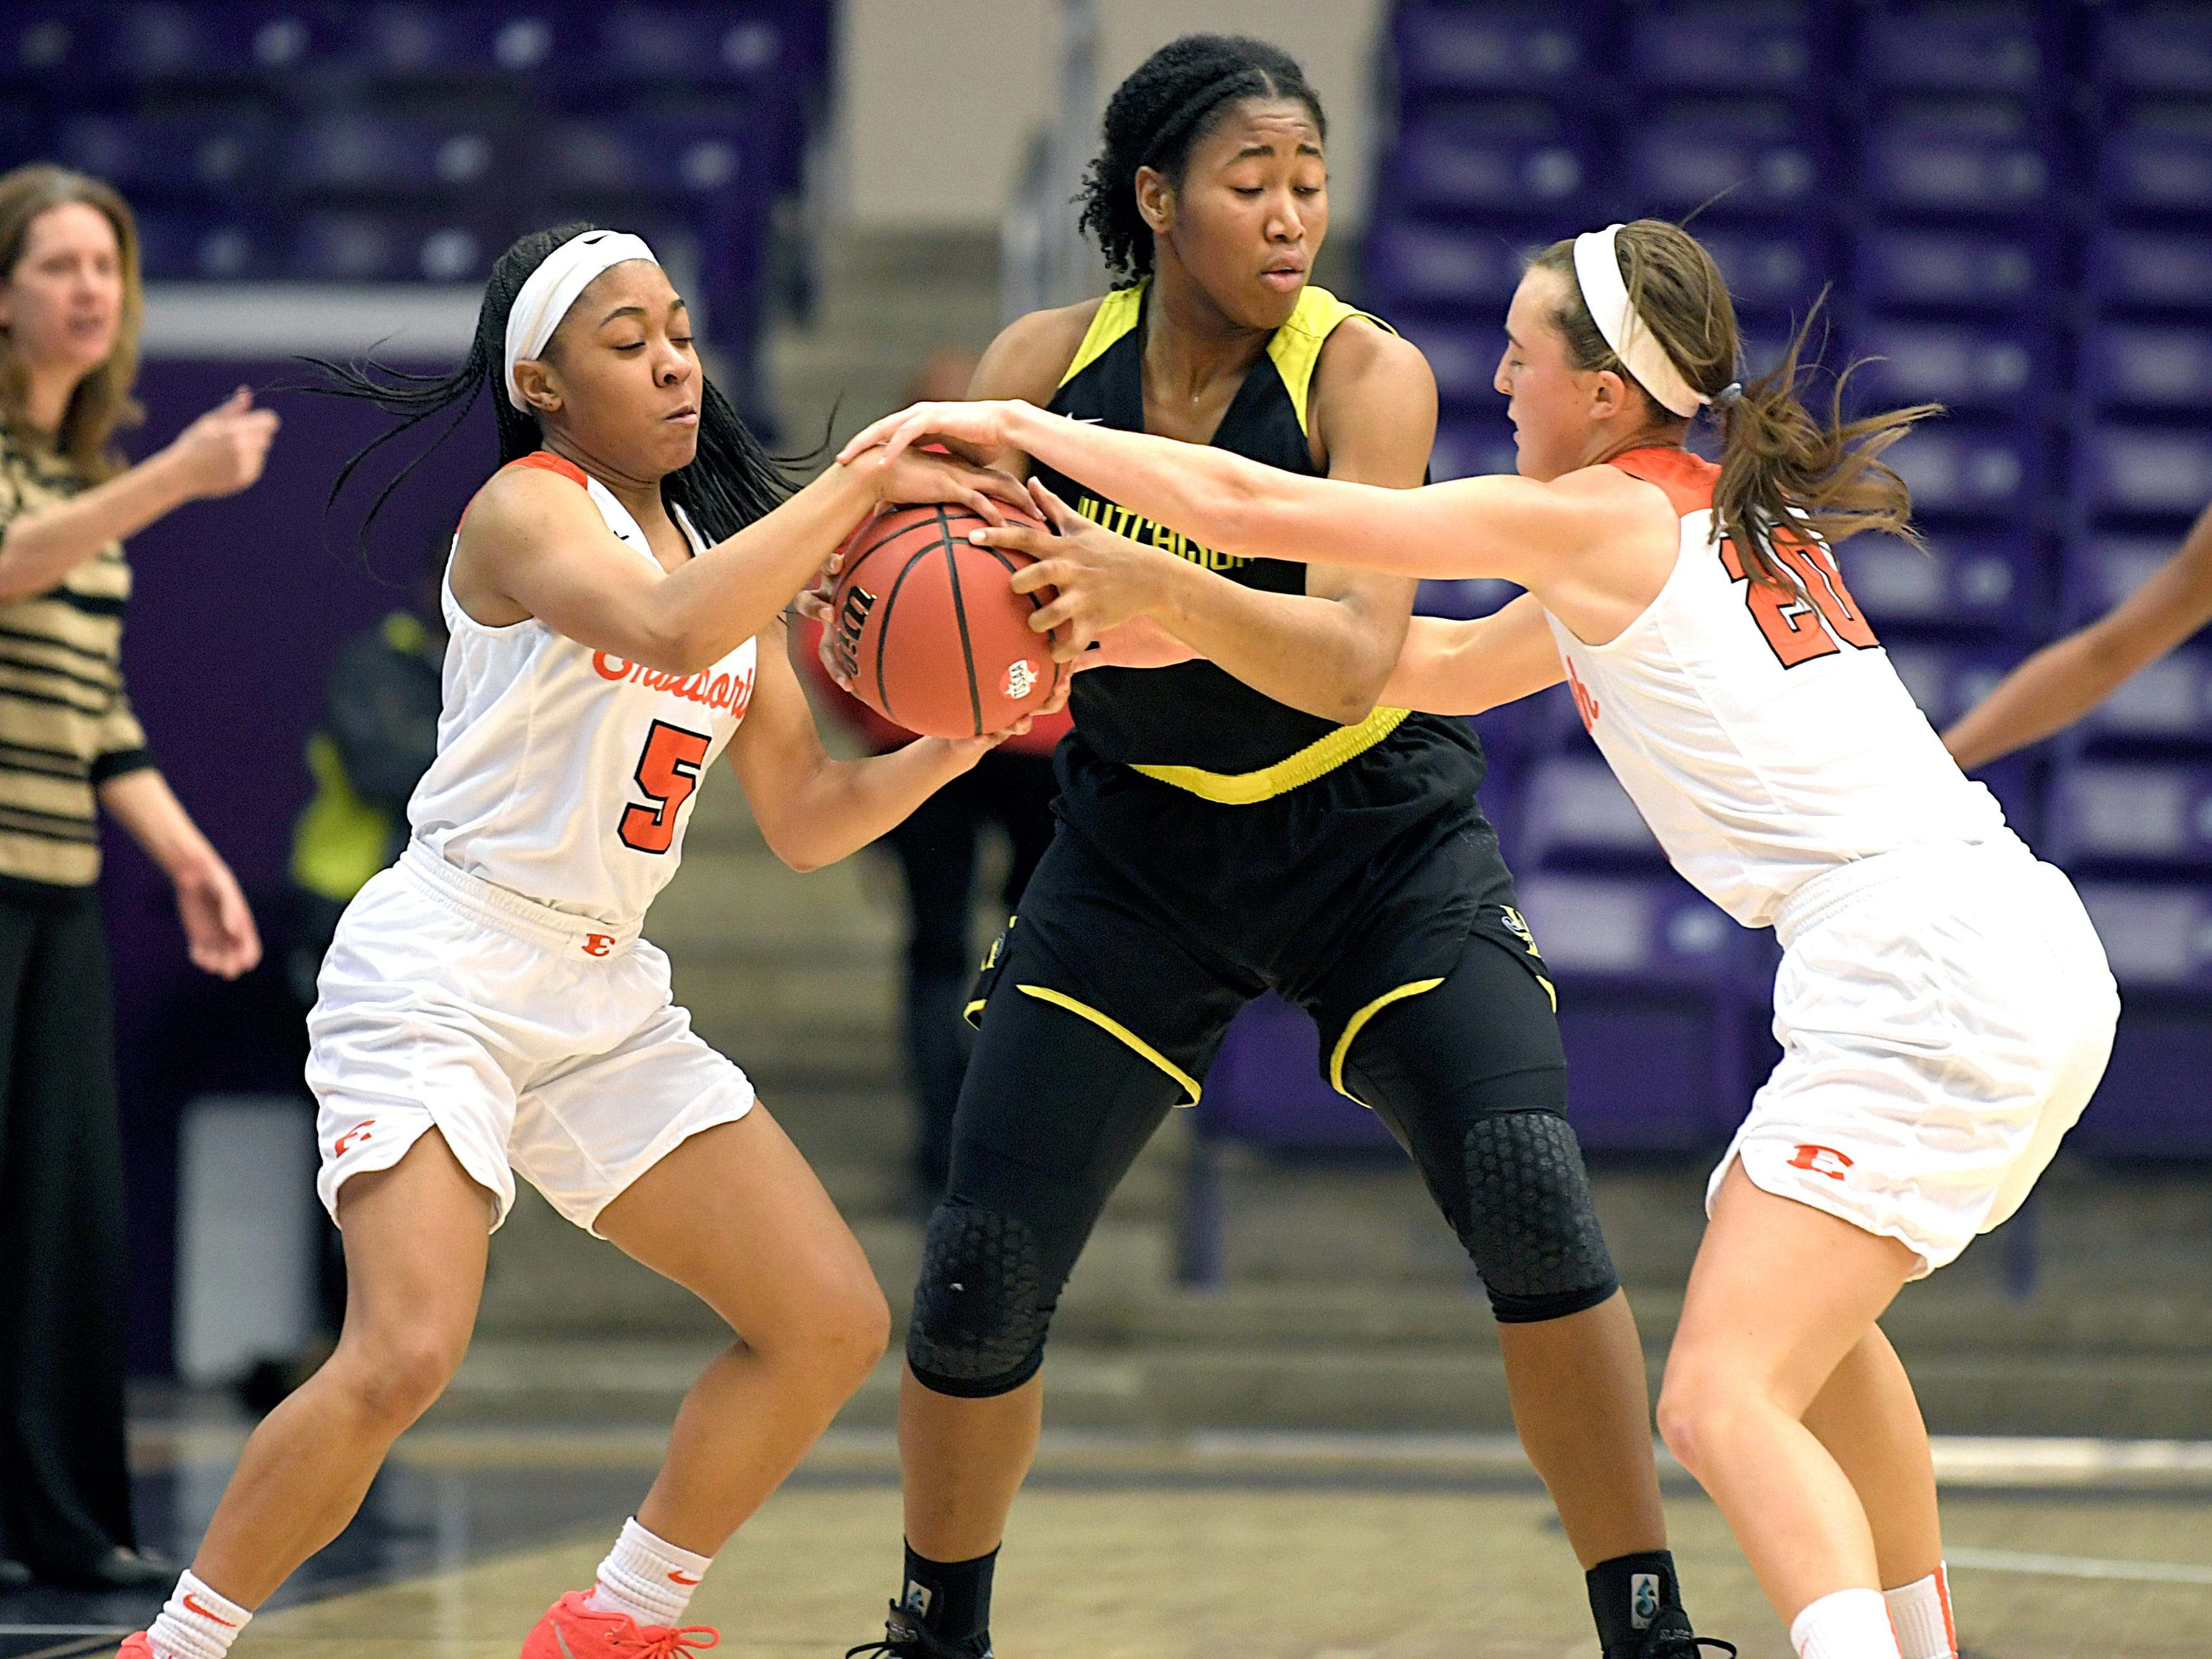 Ensworth's Jayda Woods (5) and Annabel Frist (20) take the ball away from Hutchison;s Carmyn Harrison (33)   during the TSSAA Division II Class AA semifinals at Lipscomb University's Allen Arena in Nashville on Thursday, Feb. 28, 2019.